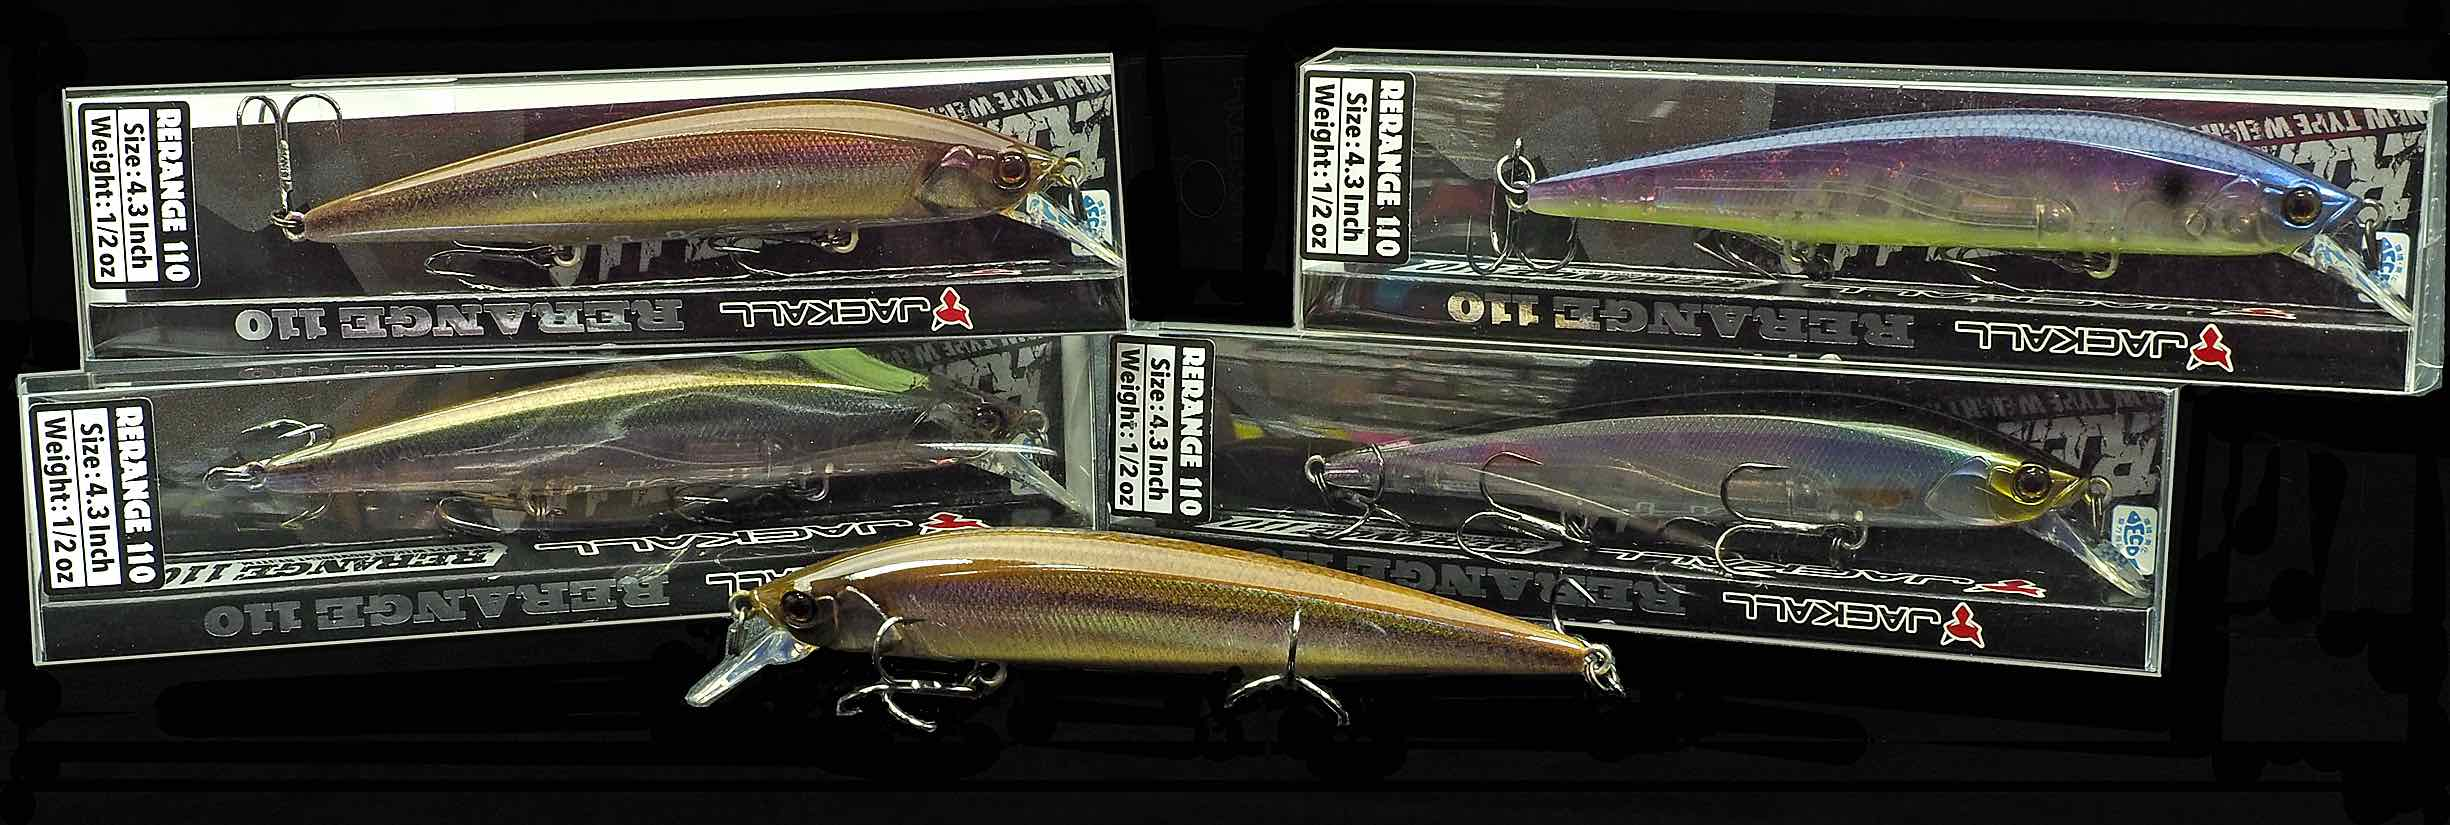 Jackall Rerange Lure Assortment.